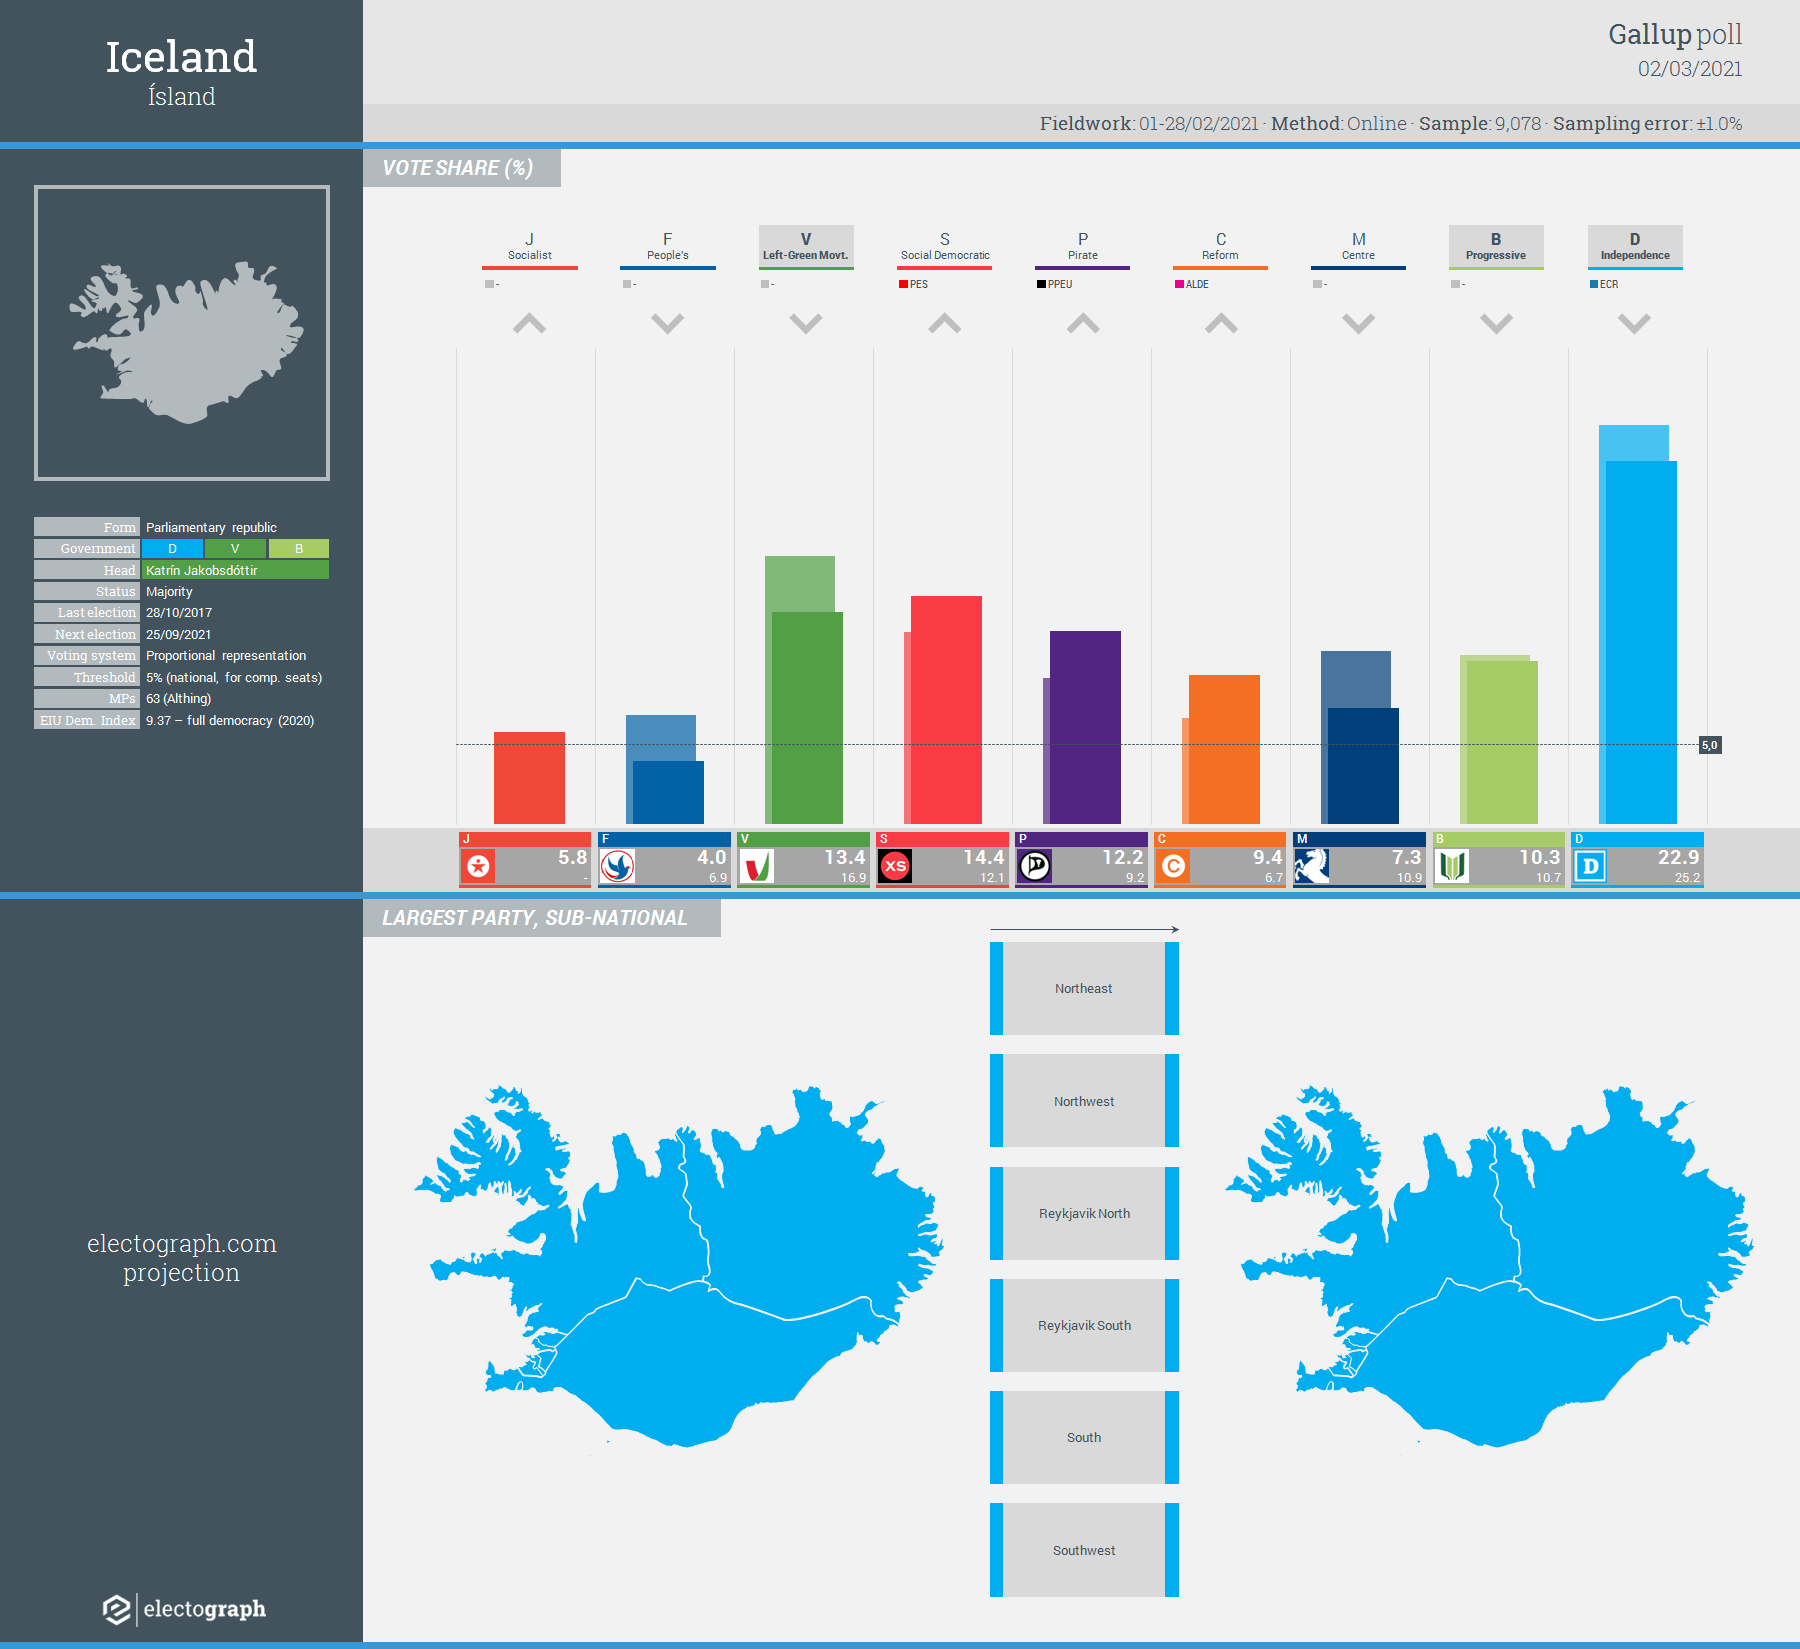 ICELAND: Gallup poll chart, 2 March 2021